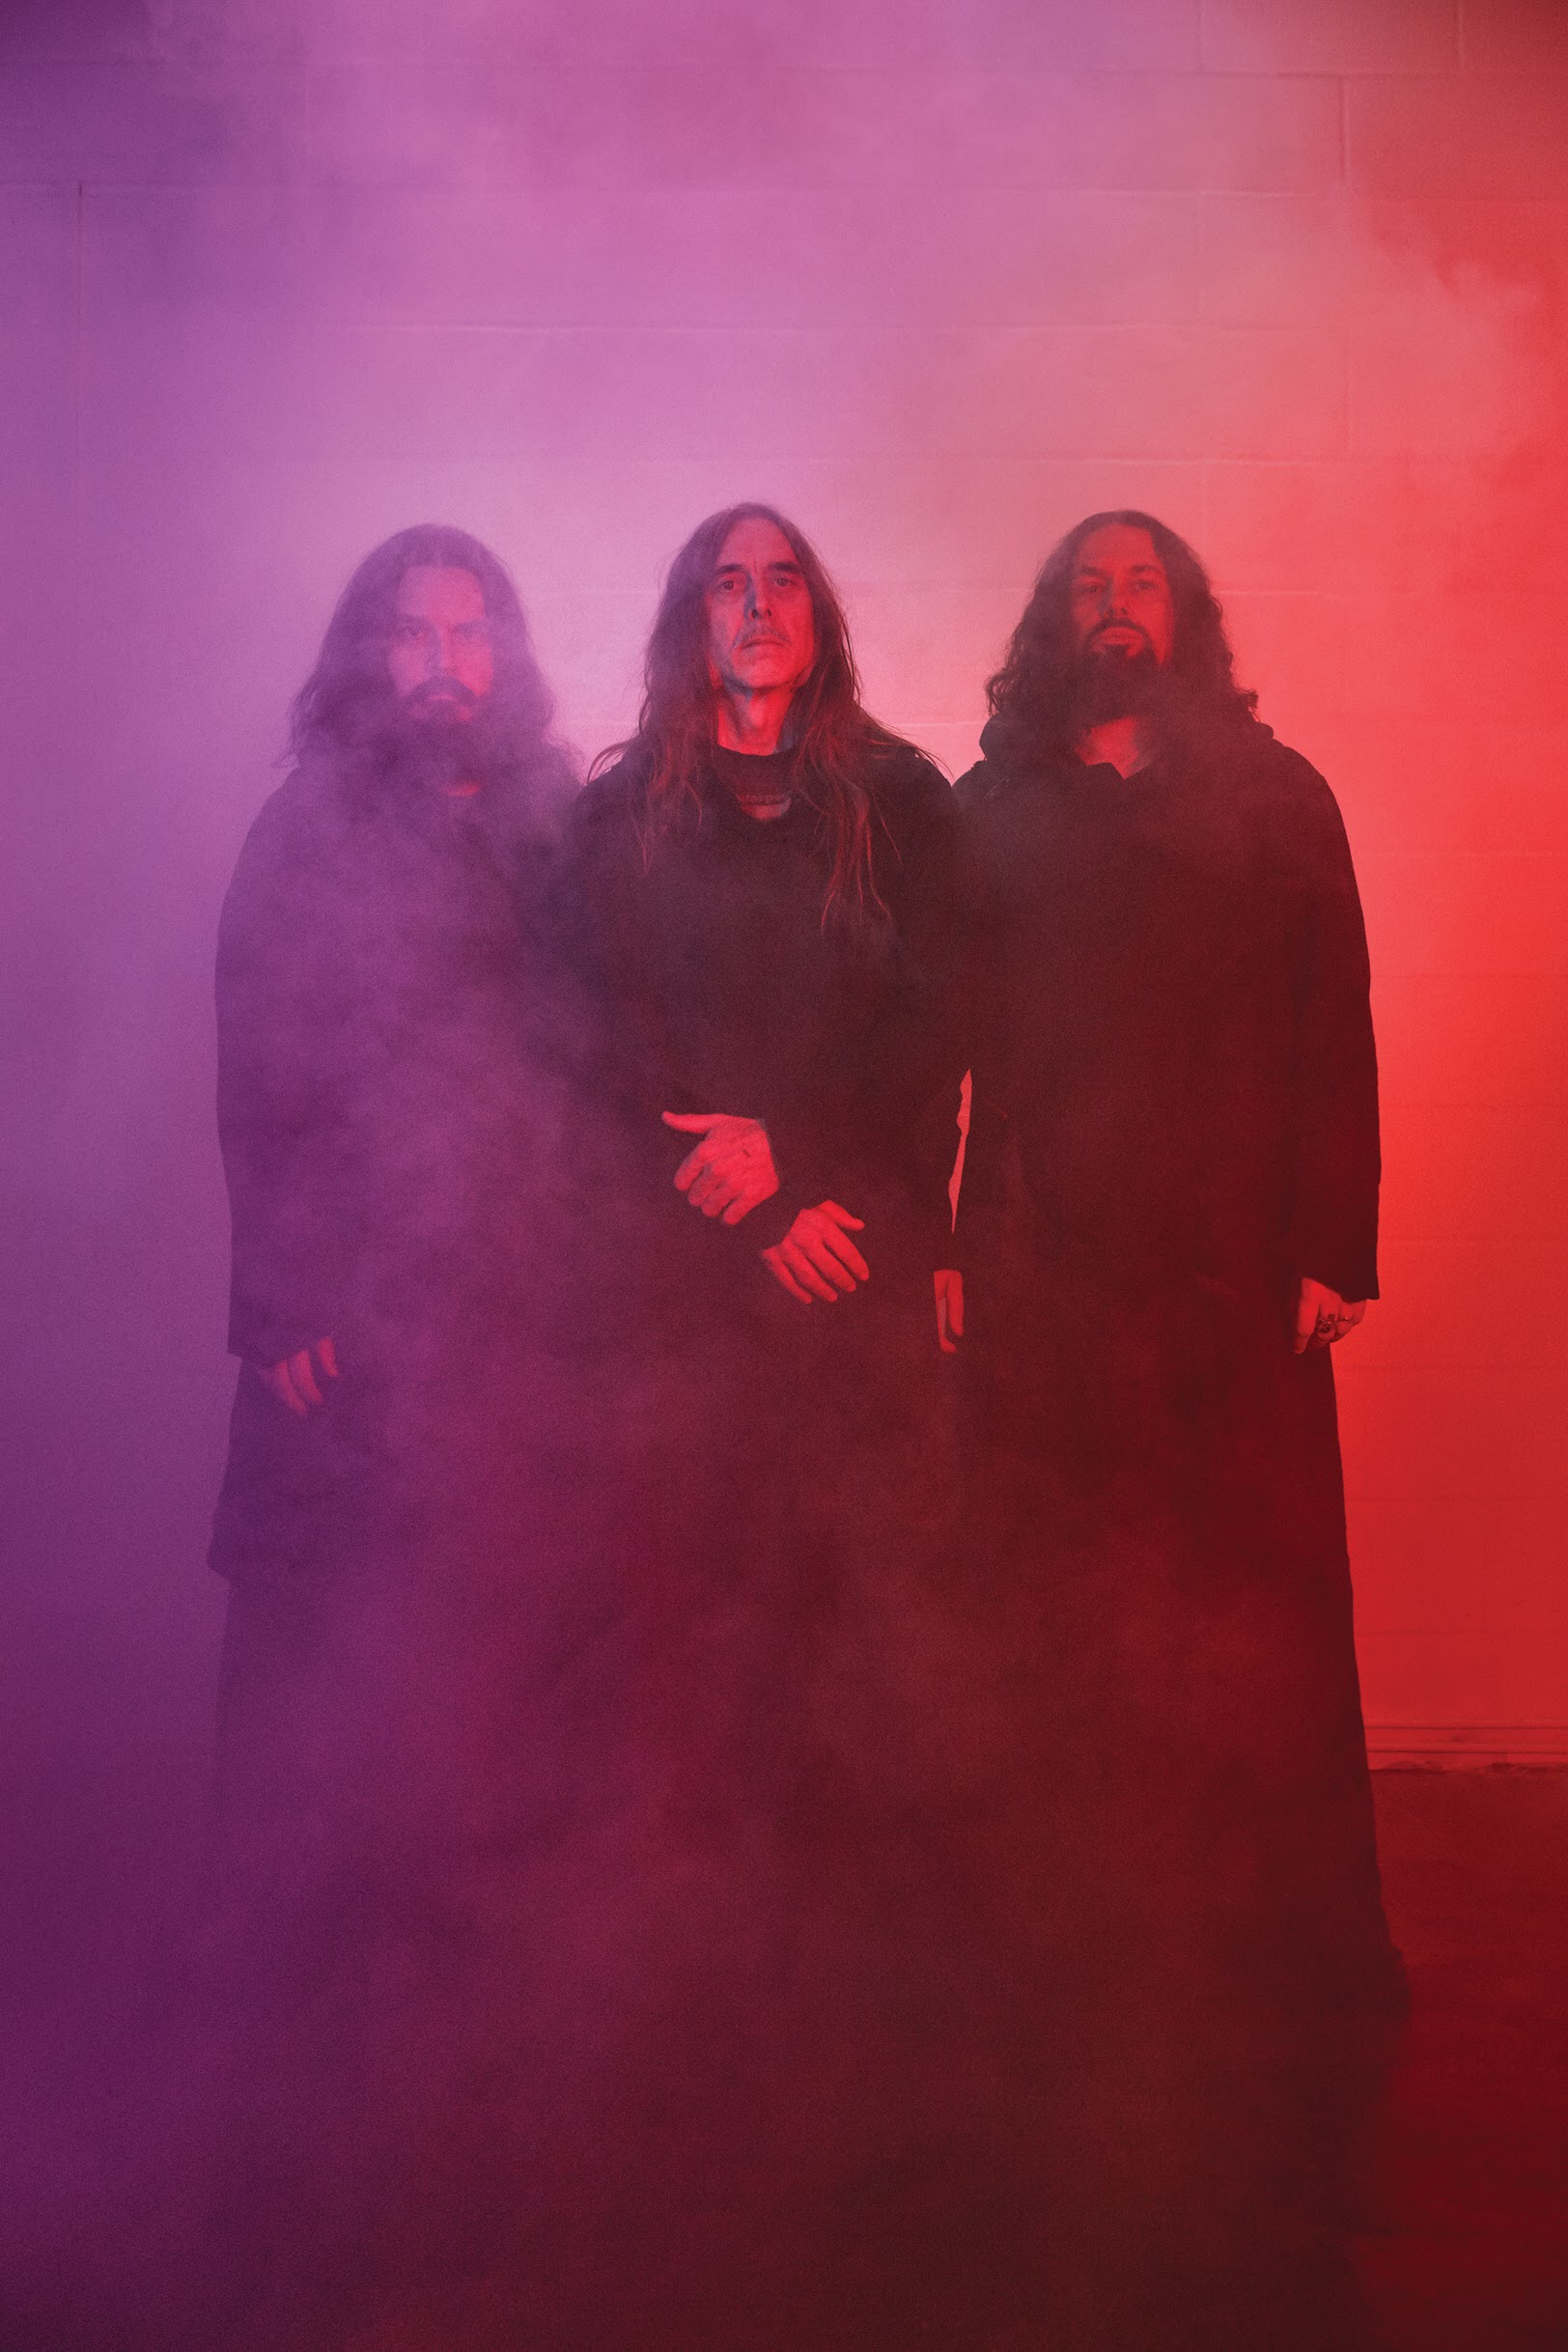 ©2018 SUNN O))) & RONALD DICK